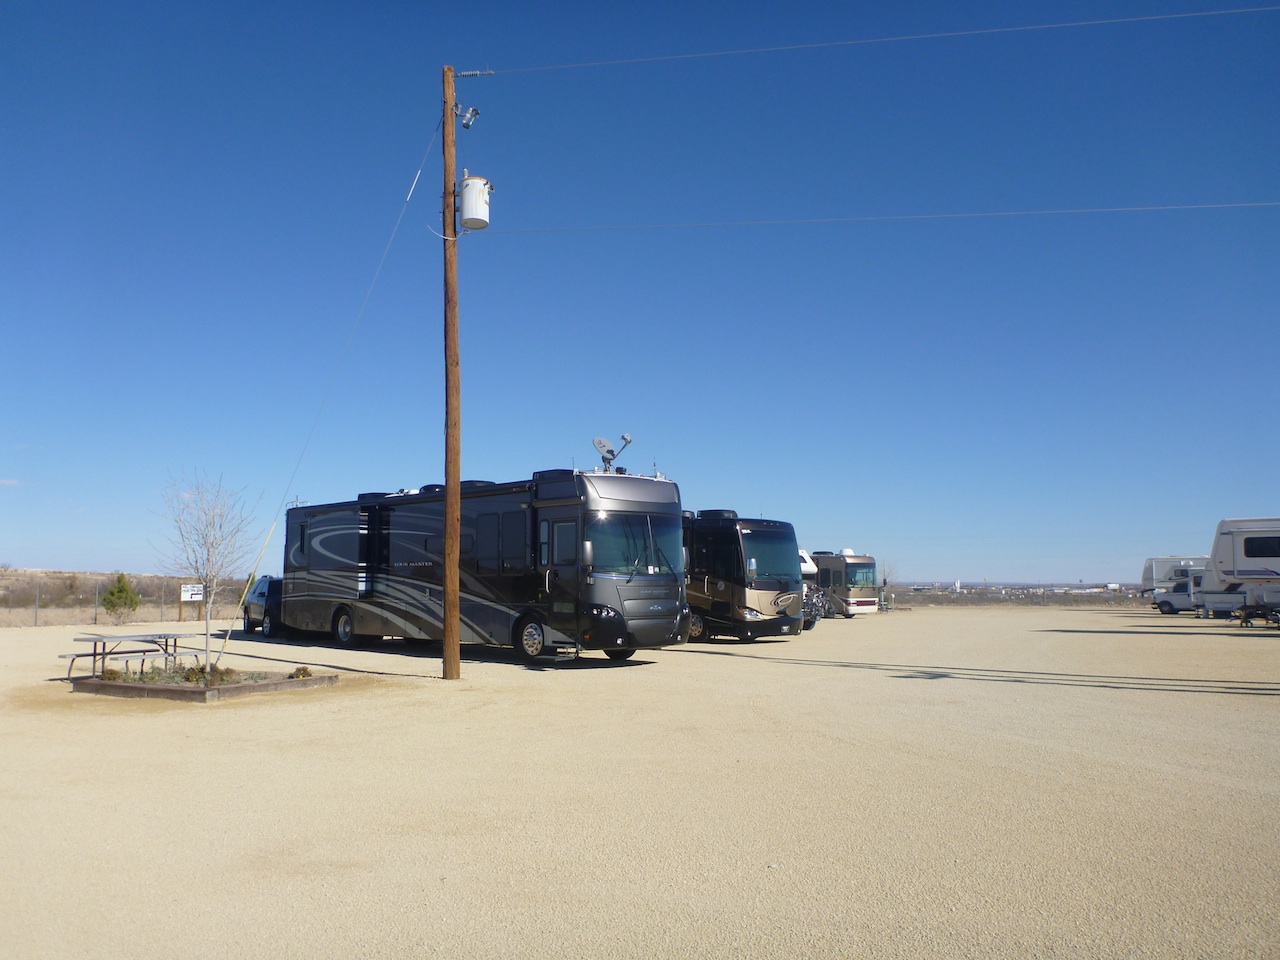 A Stop Over In An RV Park In Fort Stockton, TX